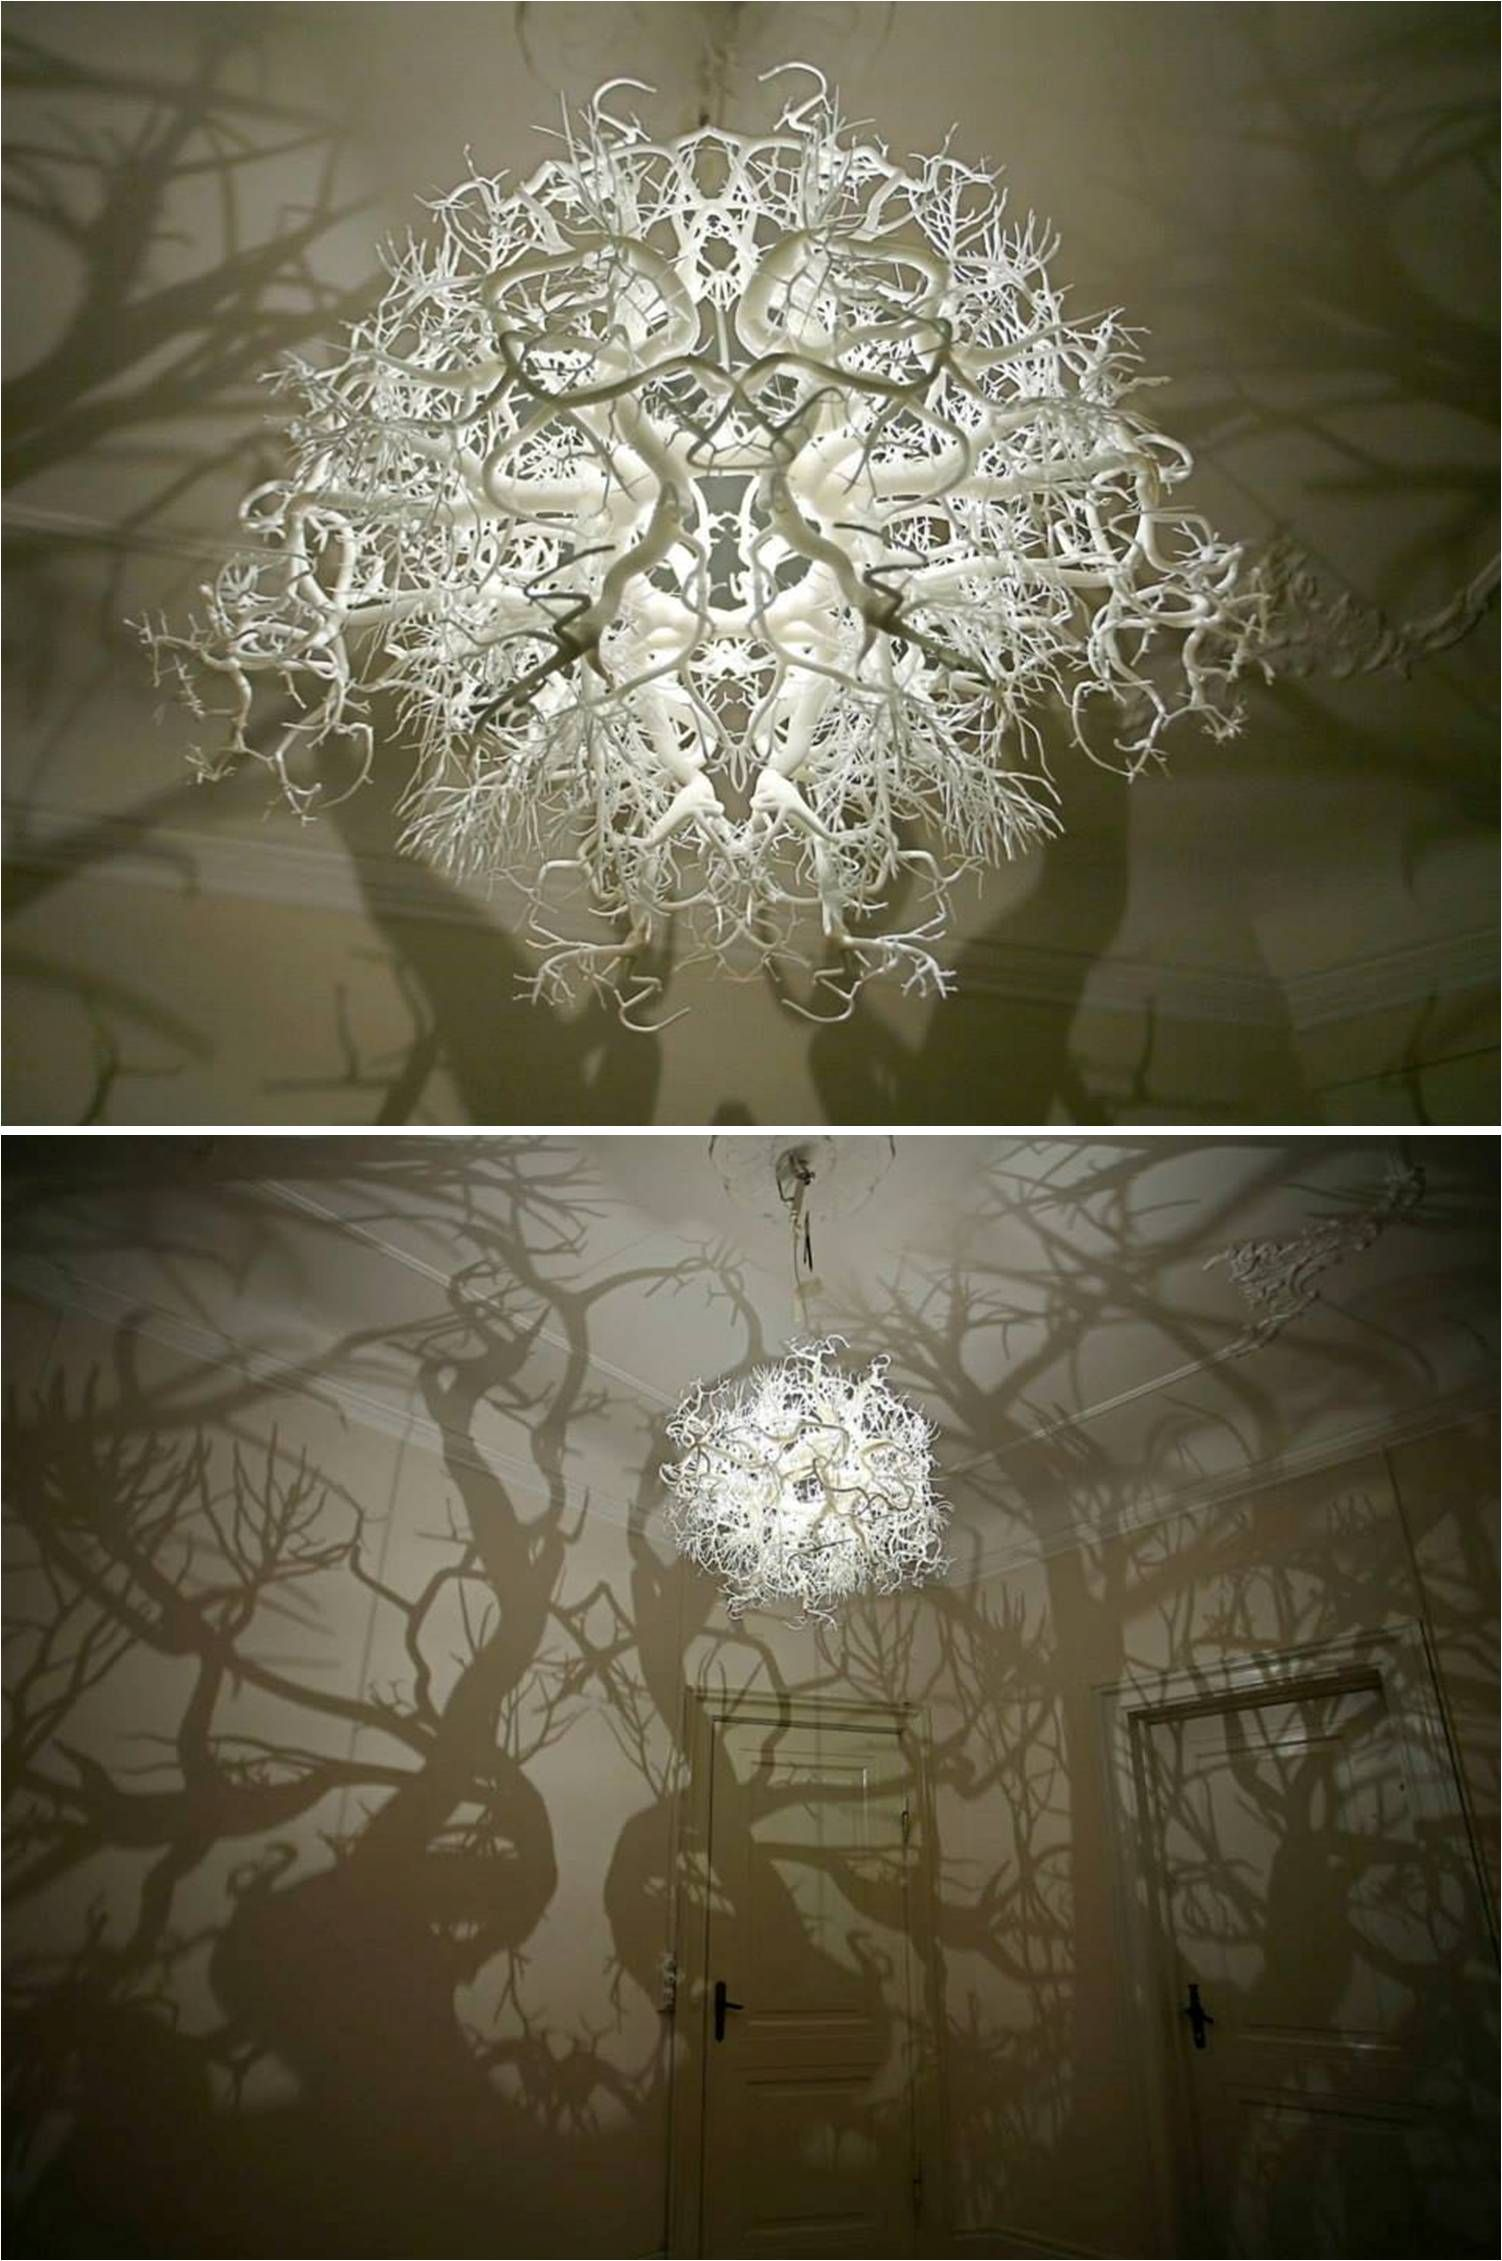 This remarkable chandelier from hilden diaz projects a 360 shadow this remarkable chandelier from hilden diaz projects a 360 shadow of trees and roots arubaitofo Images